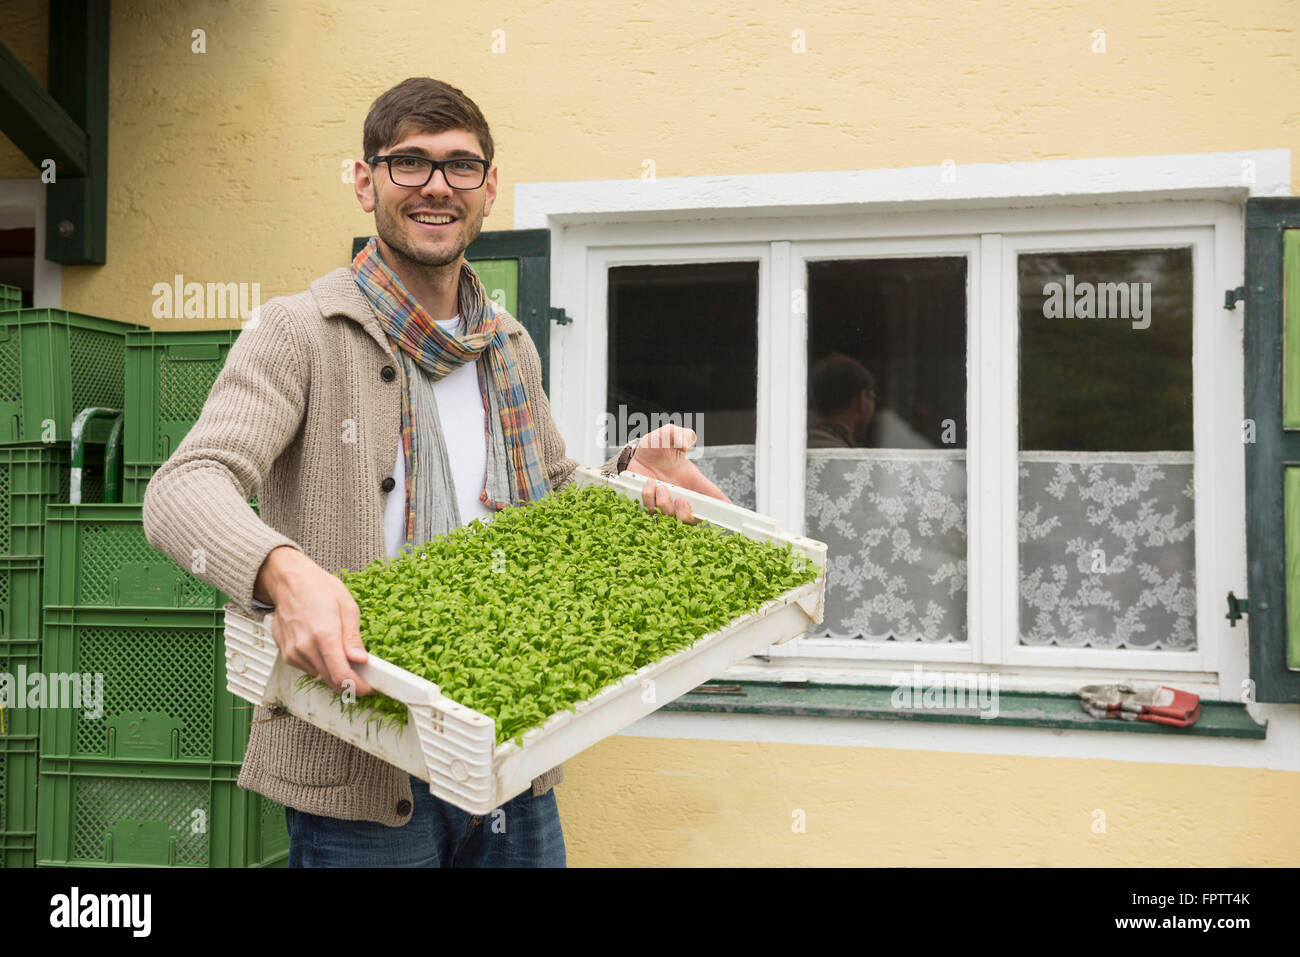 Portrait of an organic farmer holding a plant crate for salad in farm, Bavaria, Germany - Stock Image